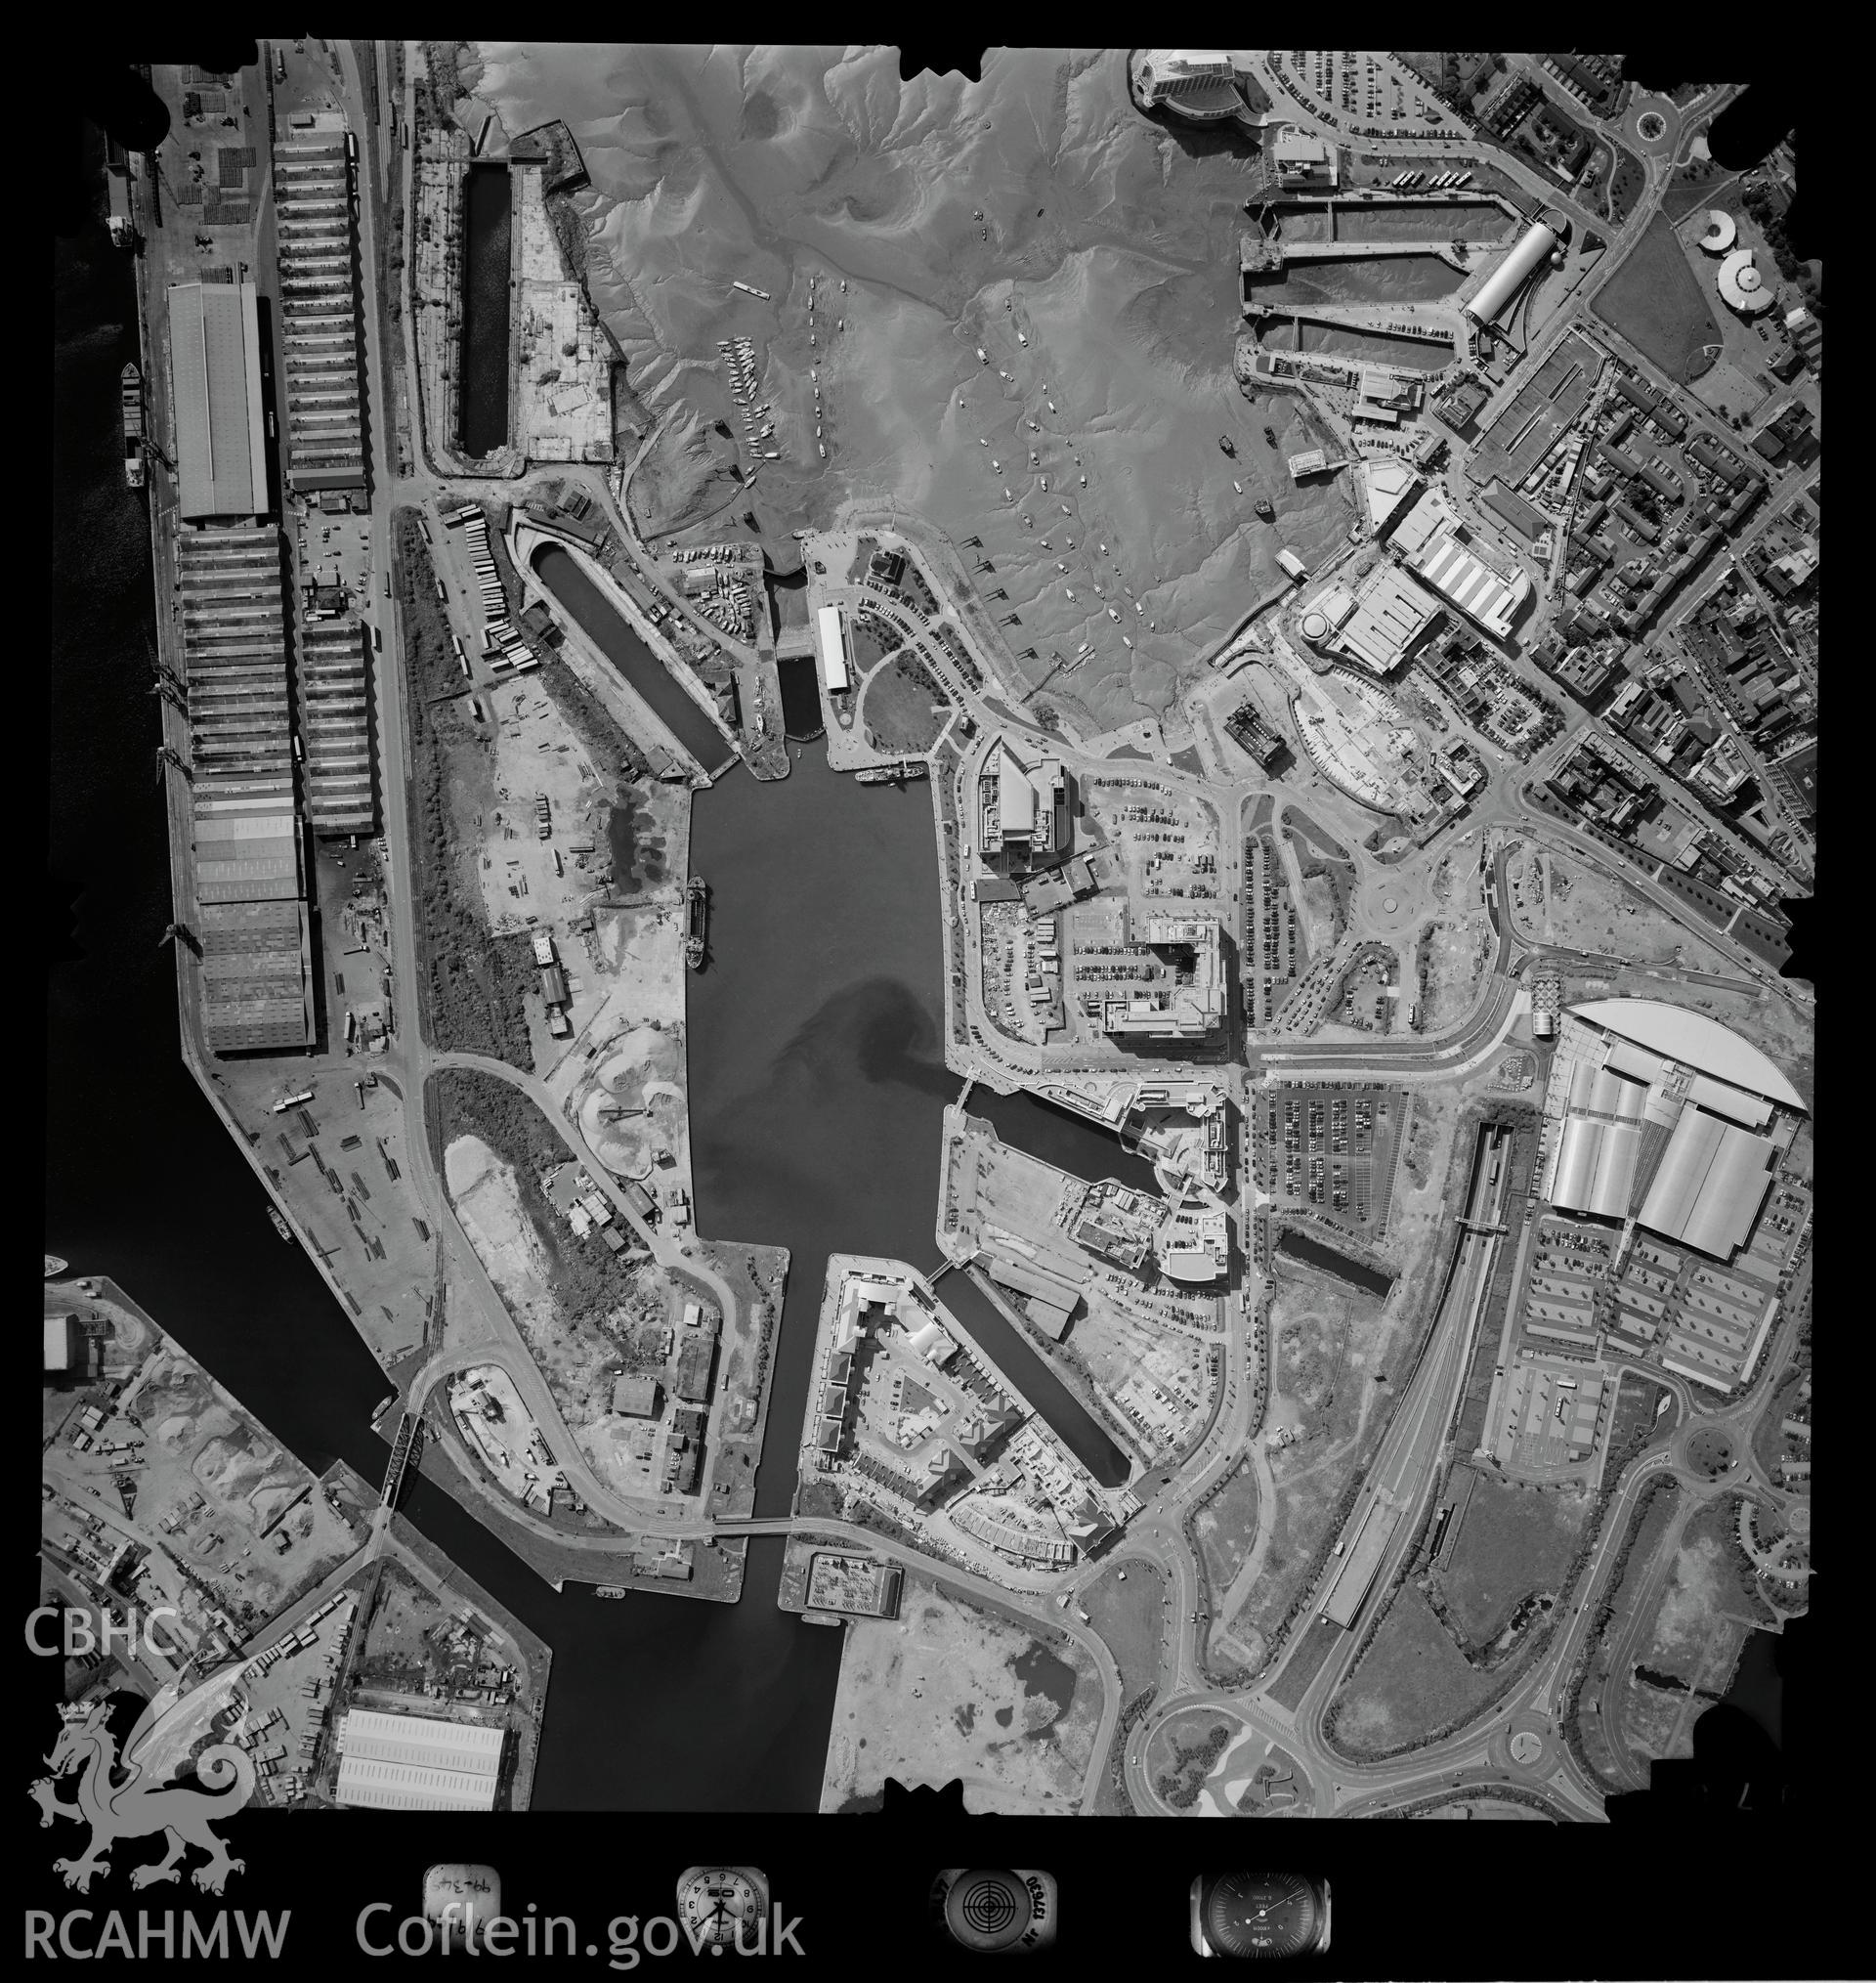 Digitized copy of an aerial photograph showing Cardiff Bay area, taken by Ordnance Survey, 1999.